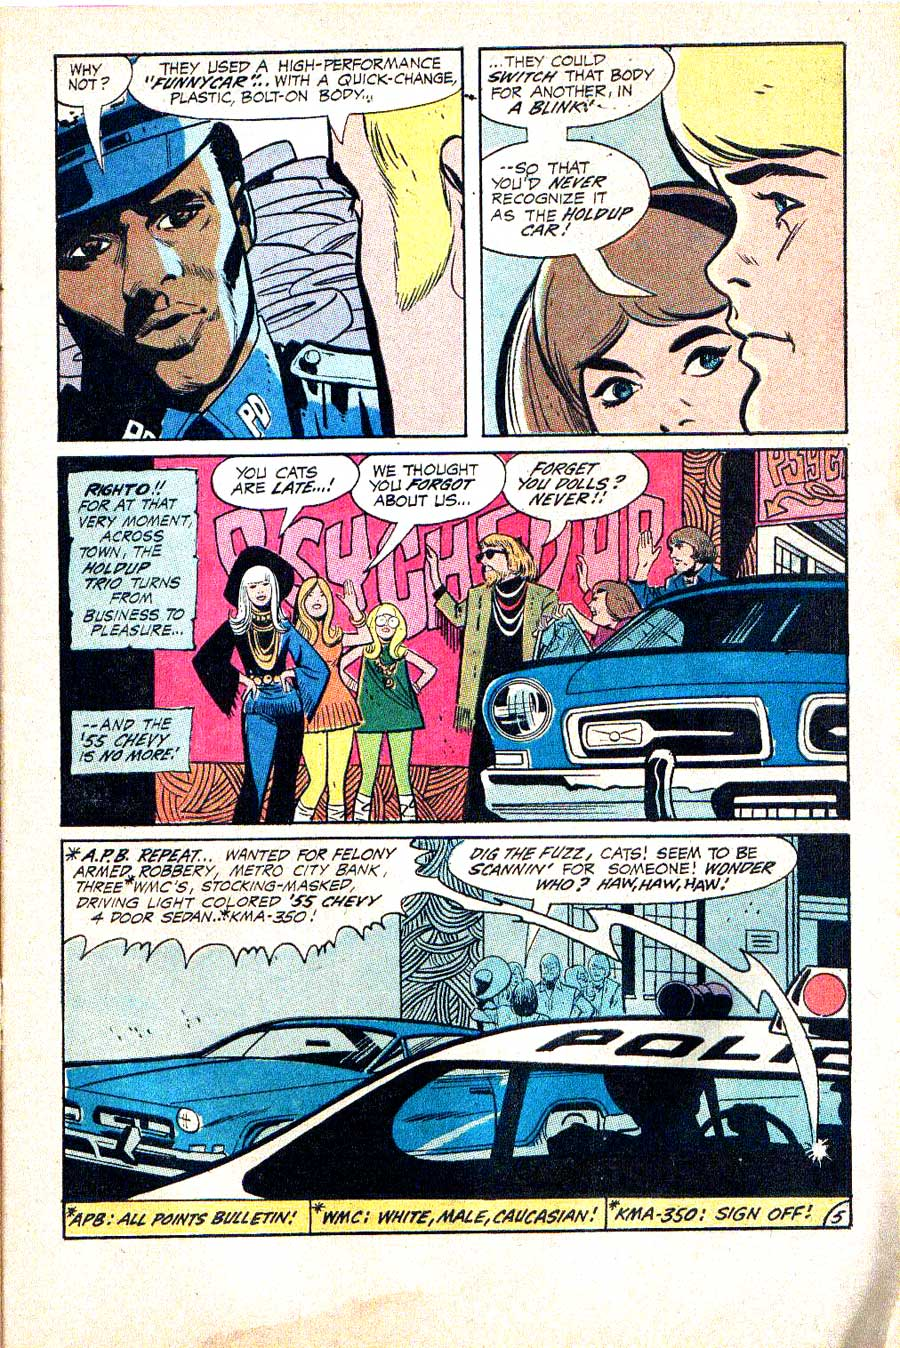 Hot Wheels v1 #3 dc 1970s bronze age comic book page art by Alex Toth